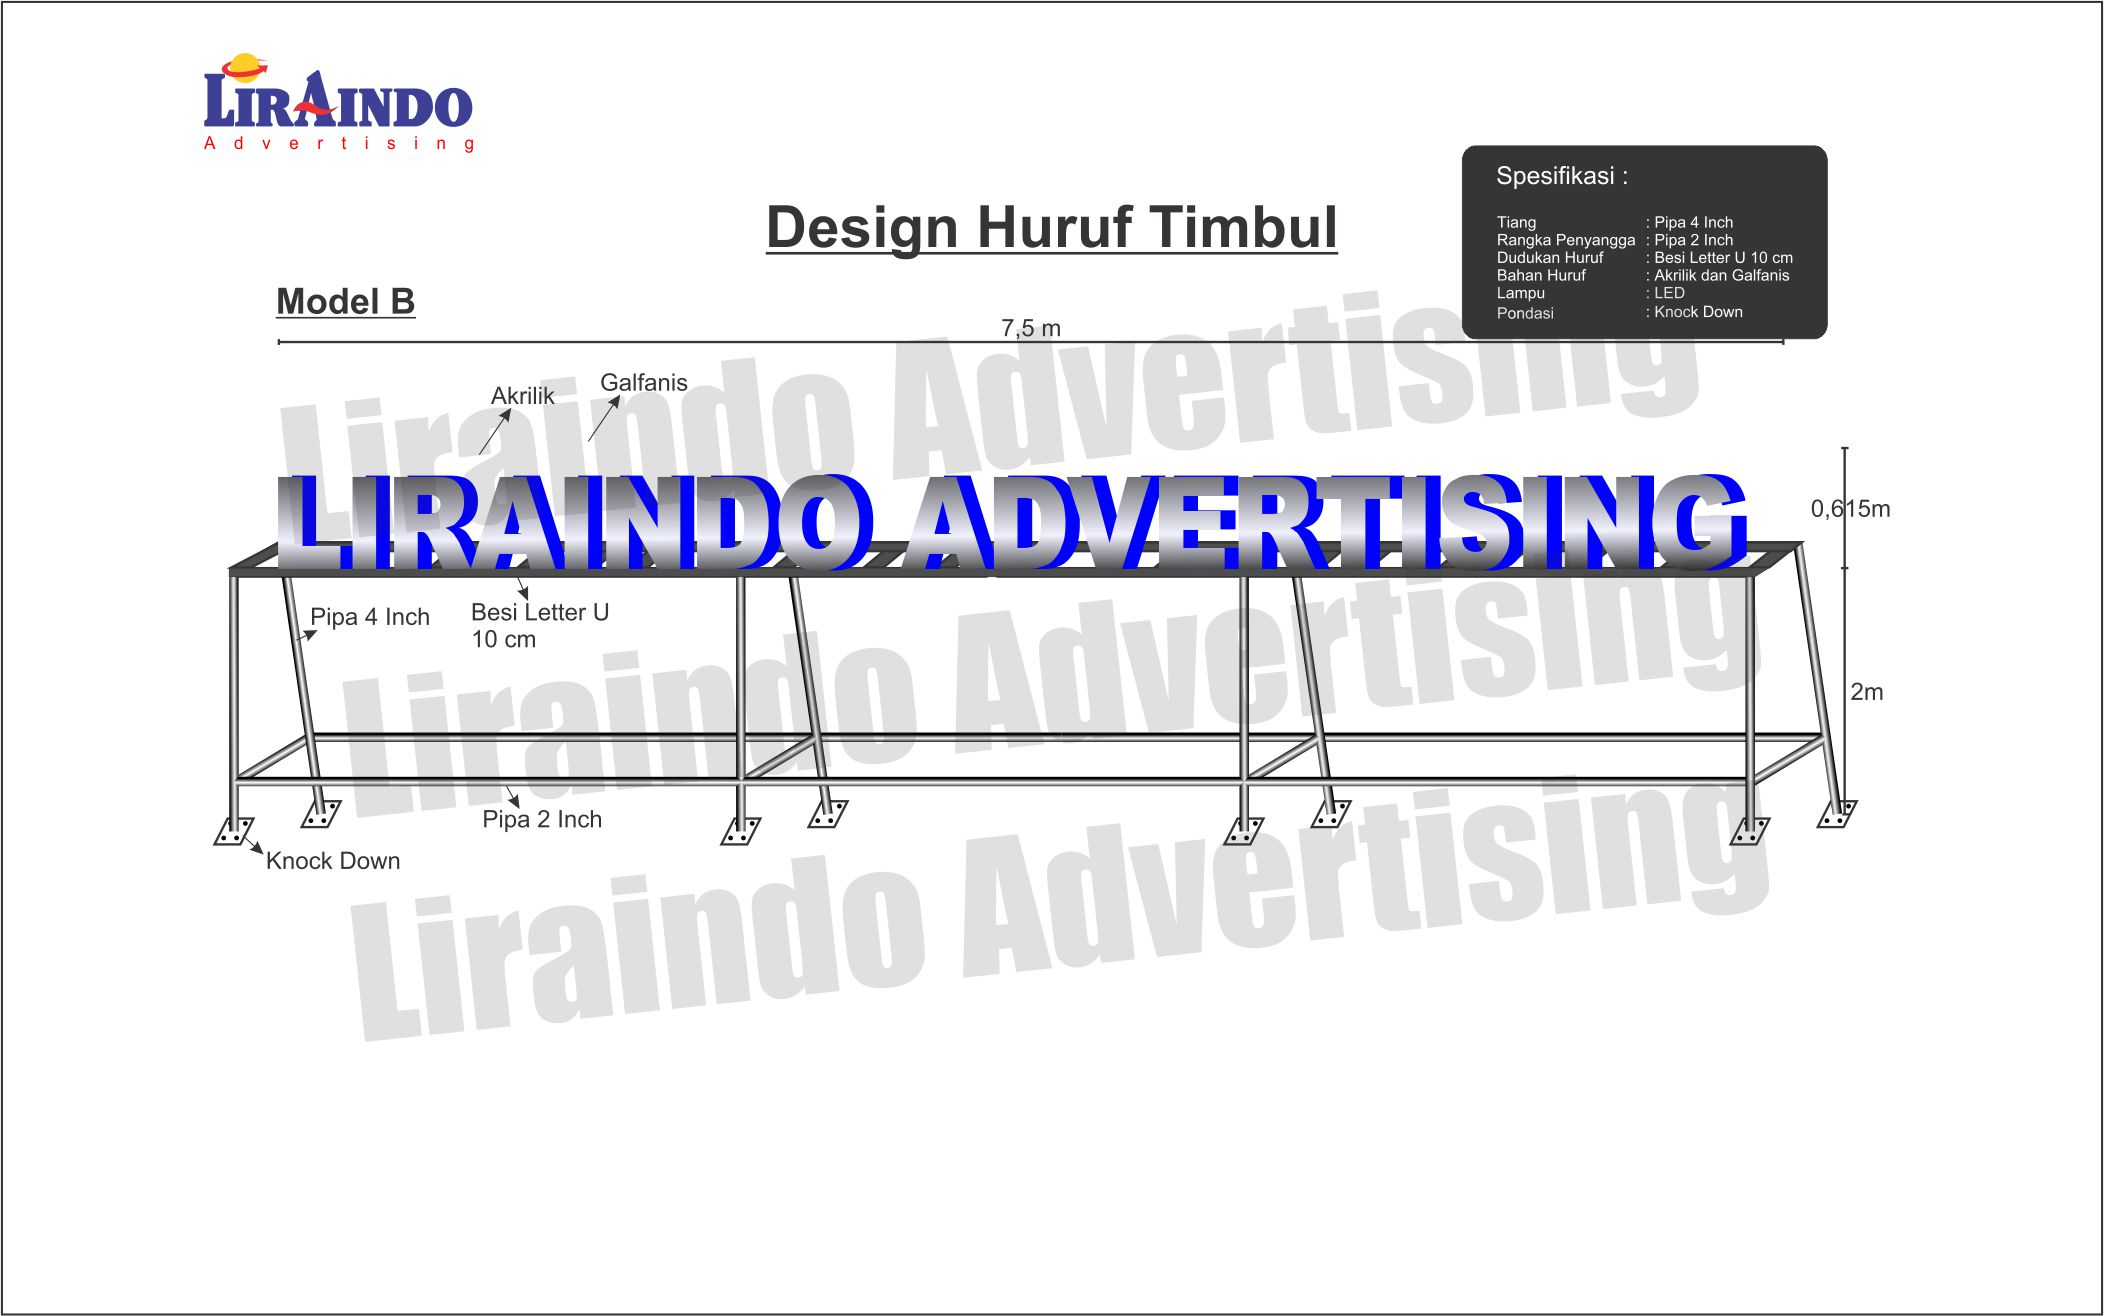 Design Huruf Timbul Model B